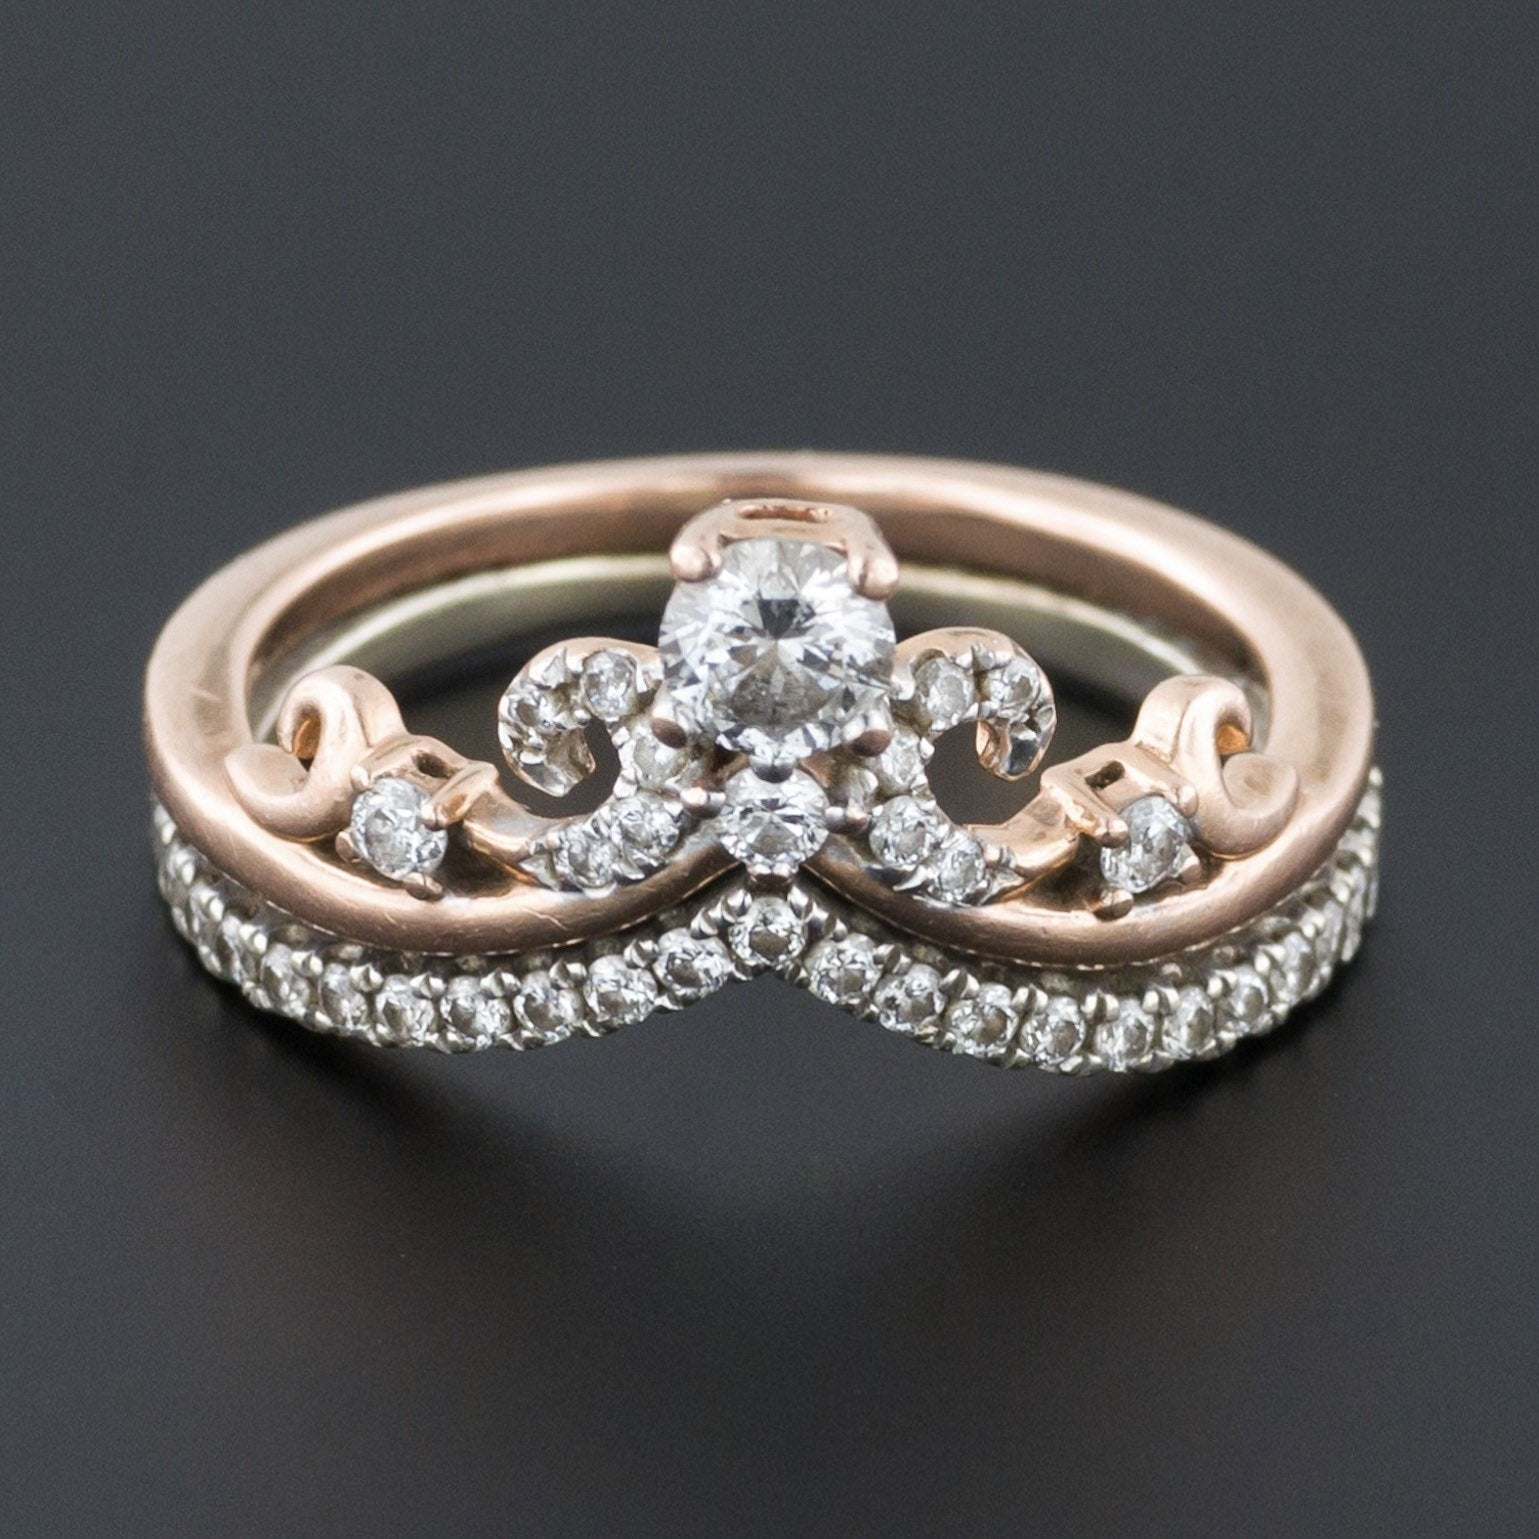 Diamond Tiara Ring | Rose and White Gold Ring | Diamond Ring | Unique Diamond Ring